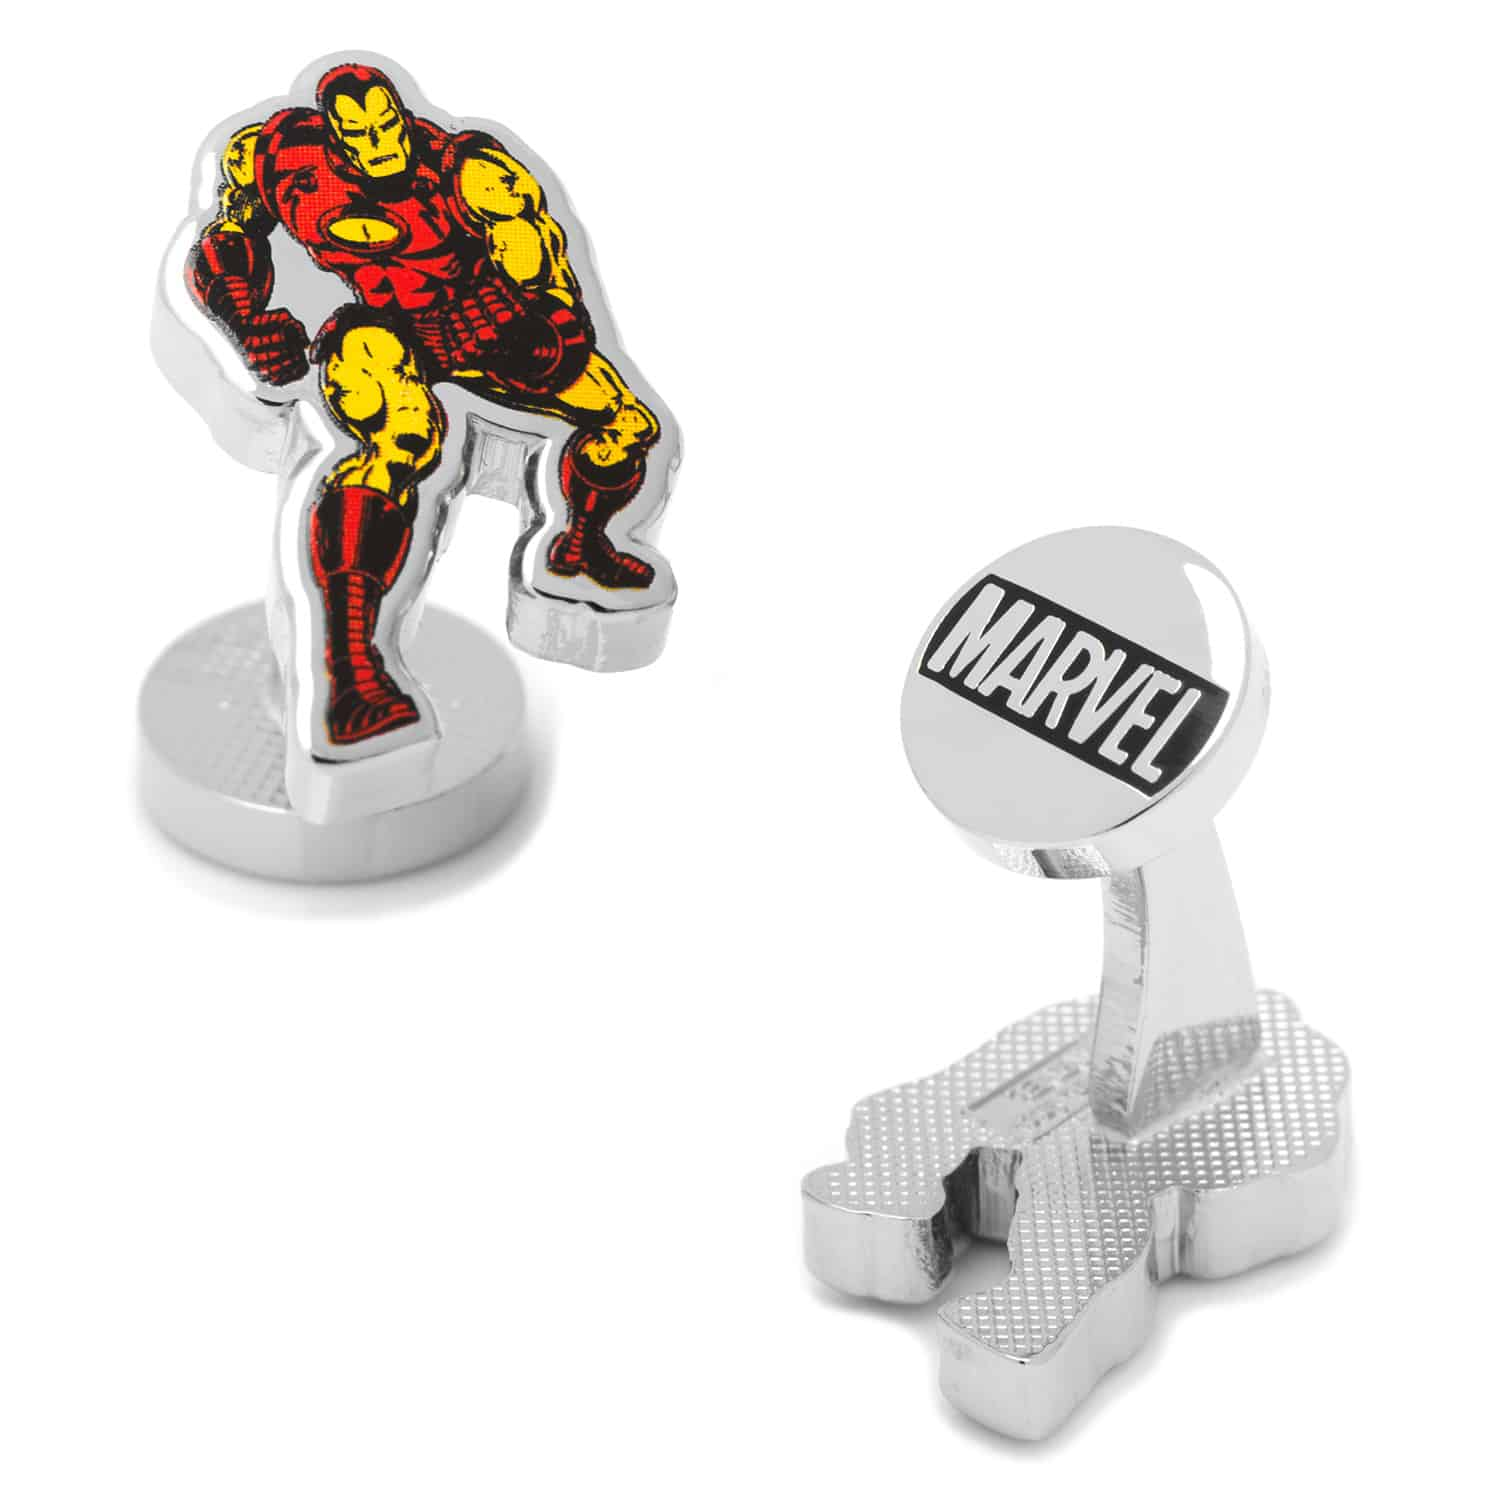 Iron Man Action Cufflinks